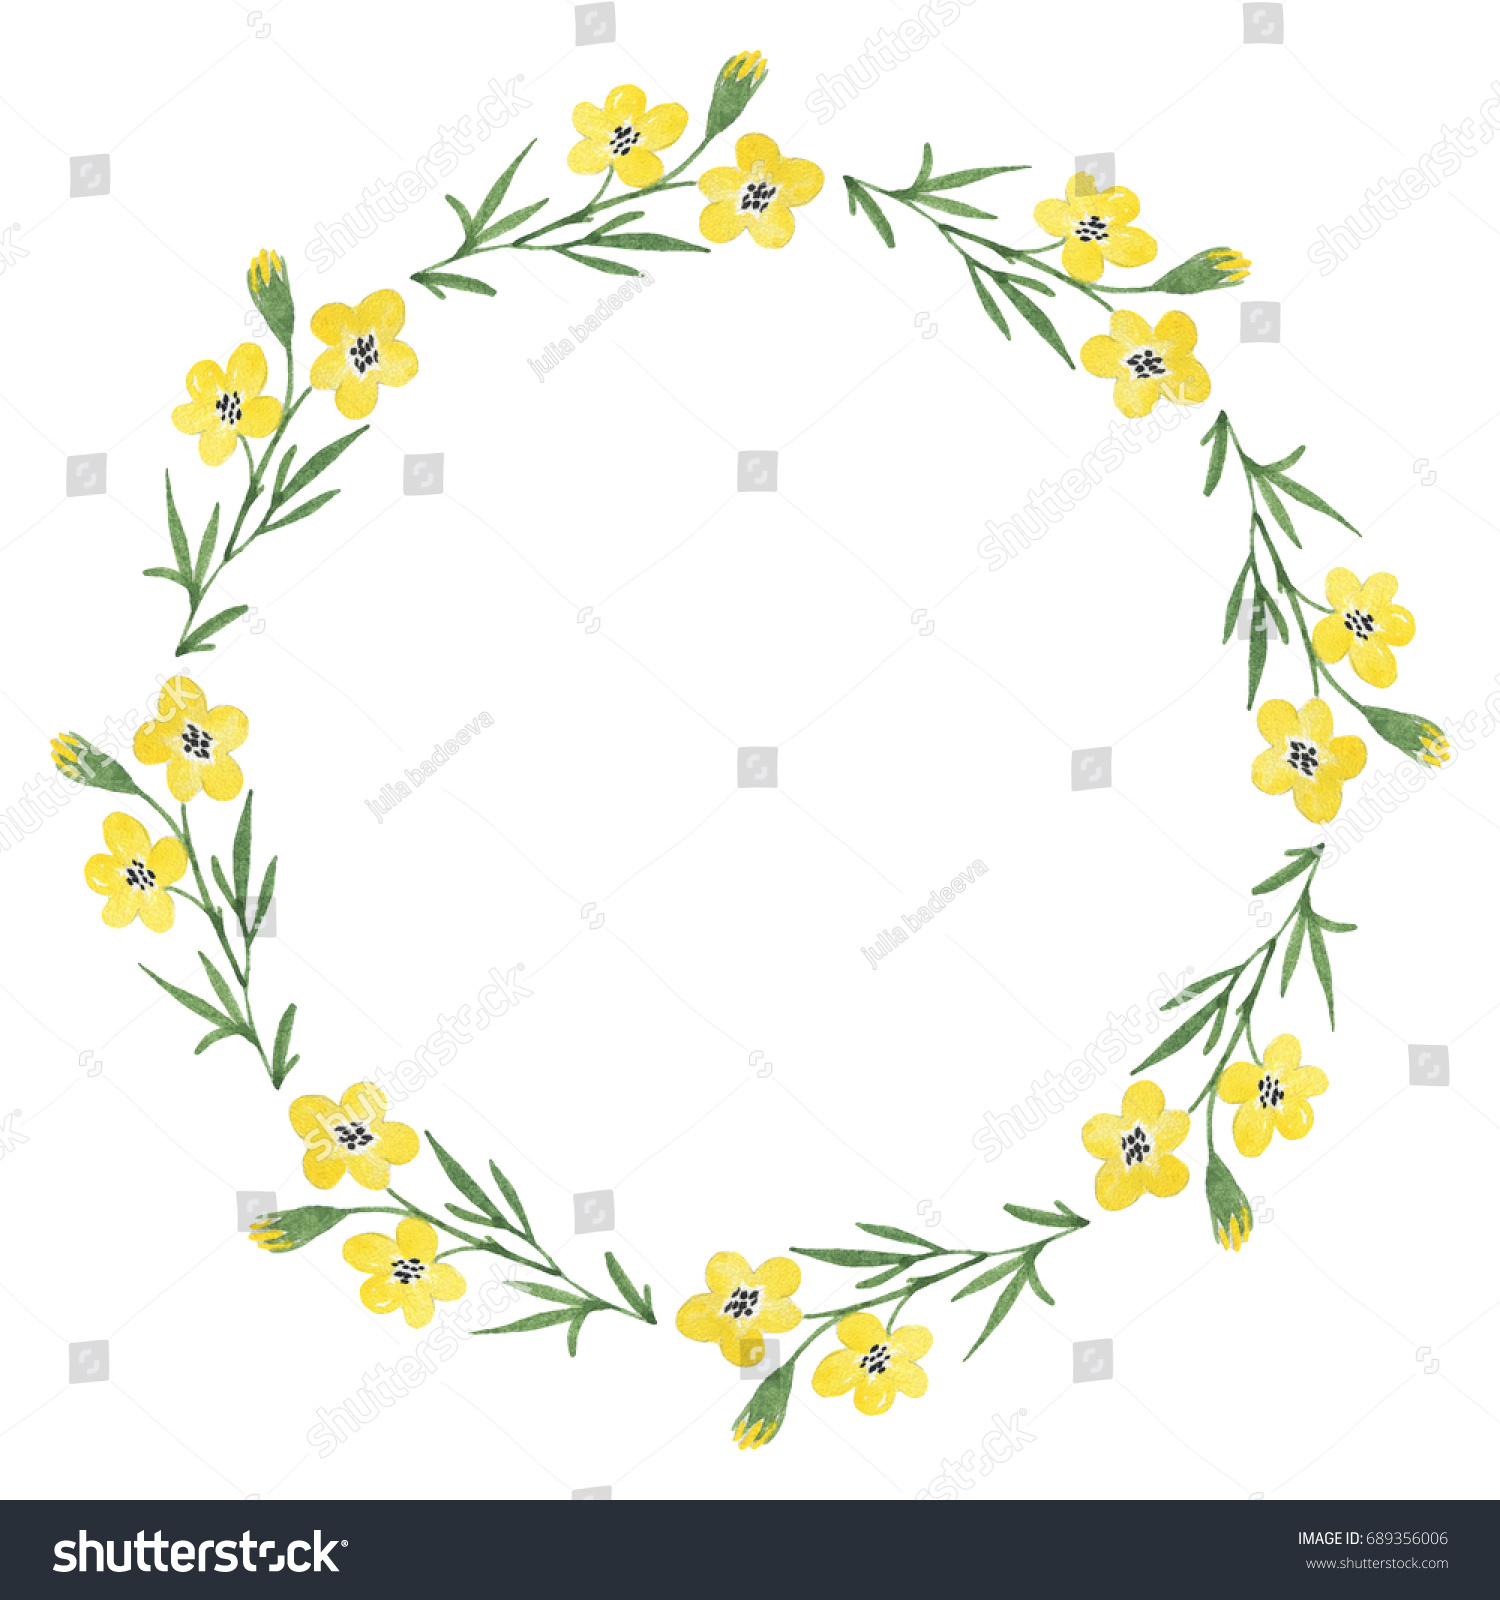 Floral Wreath With Yellow Flowers Stock Photo 689356006